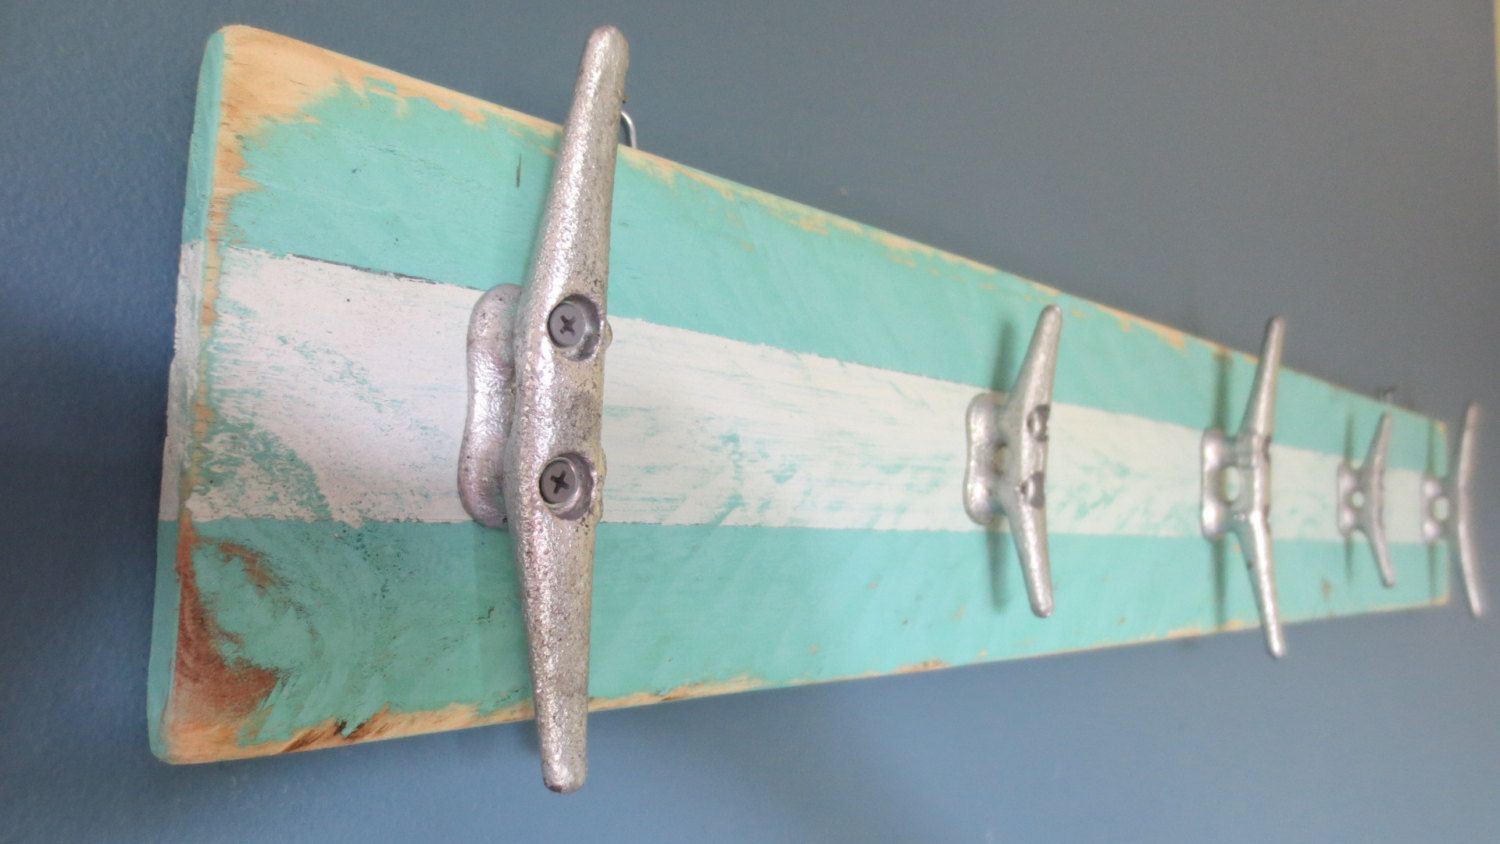 Recycled Boat Cleat Towel Rack Key Blues By Giventogauche 70 00 Seas Decor Beach